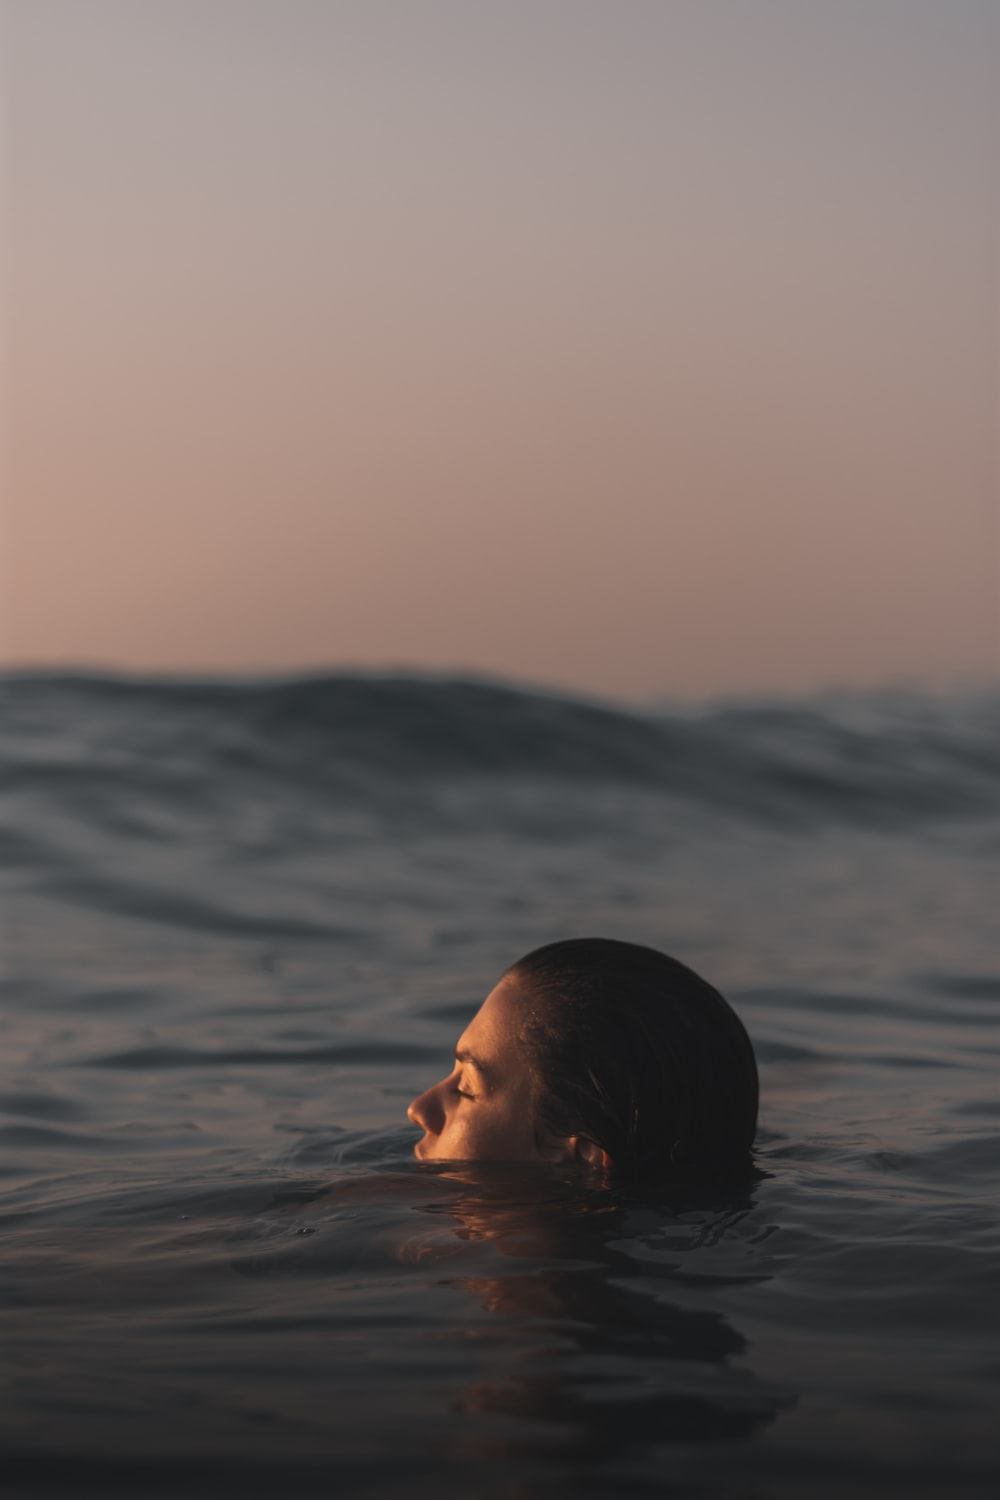 shallow focus photo of person in body of water